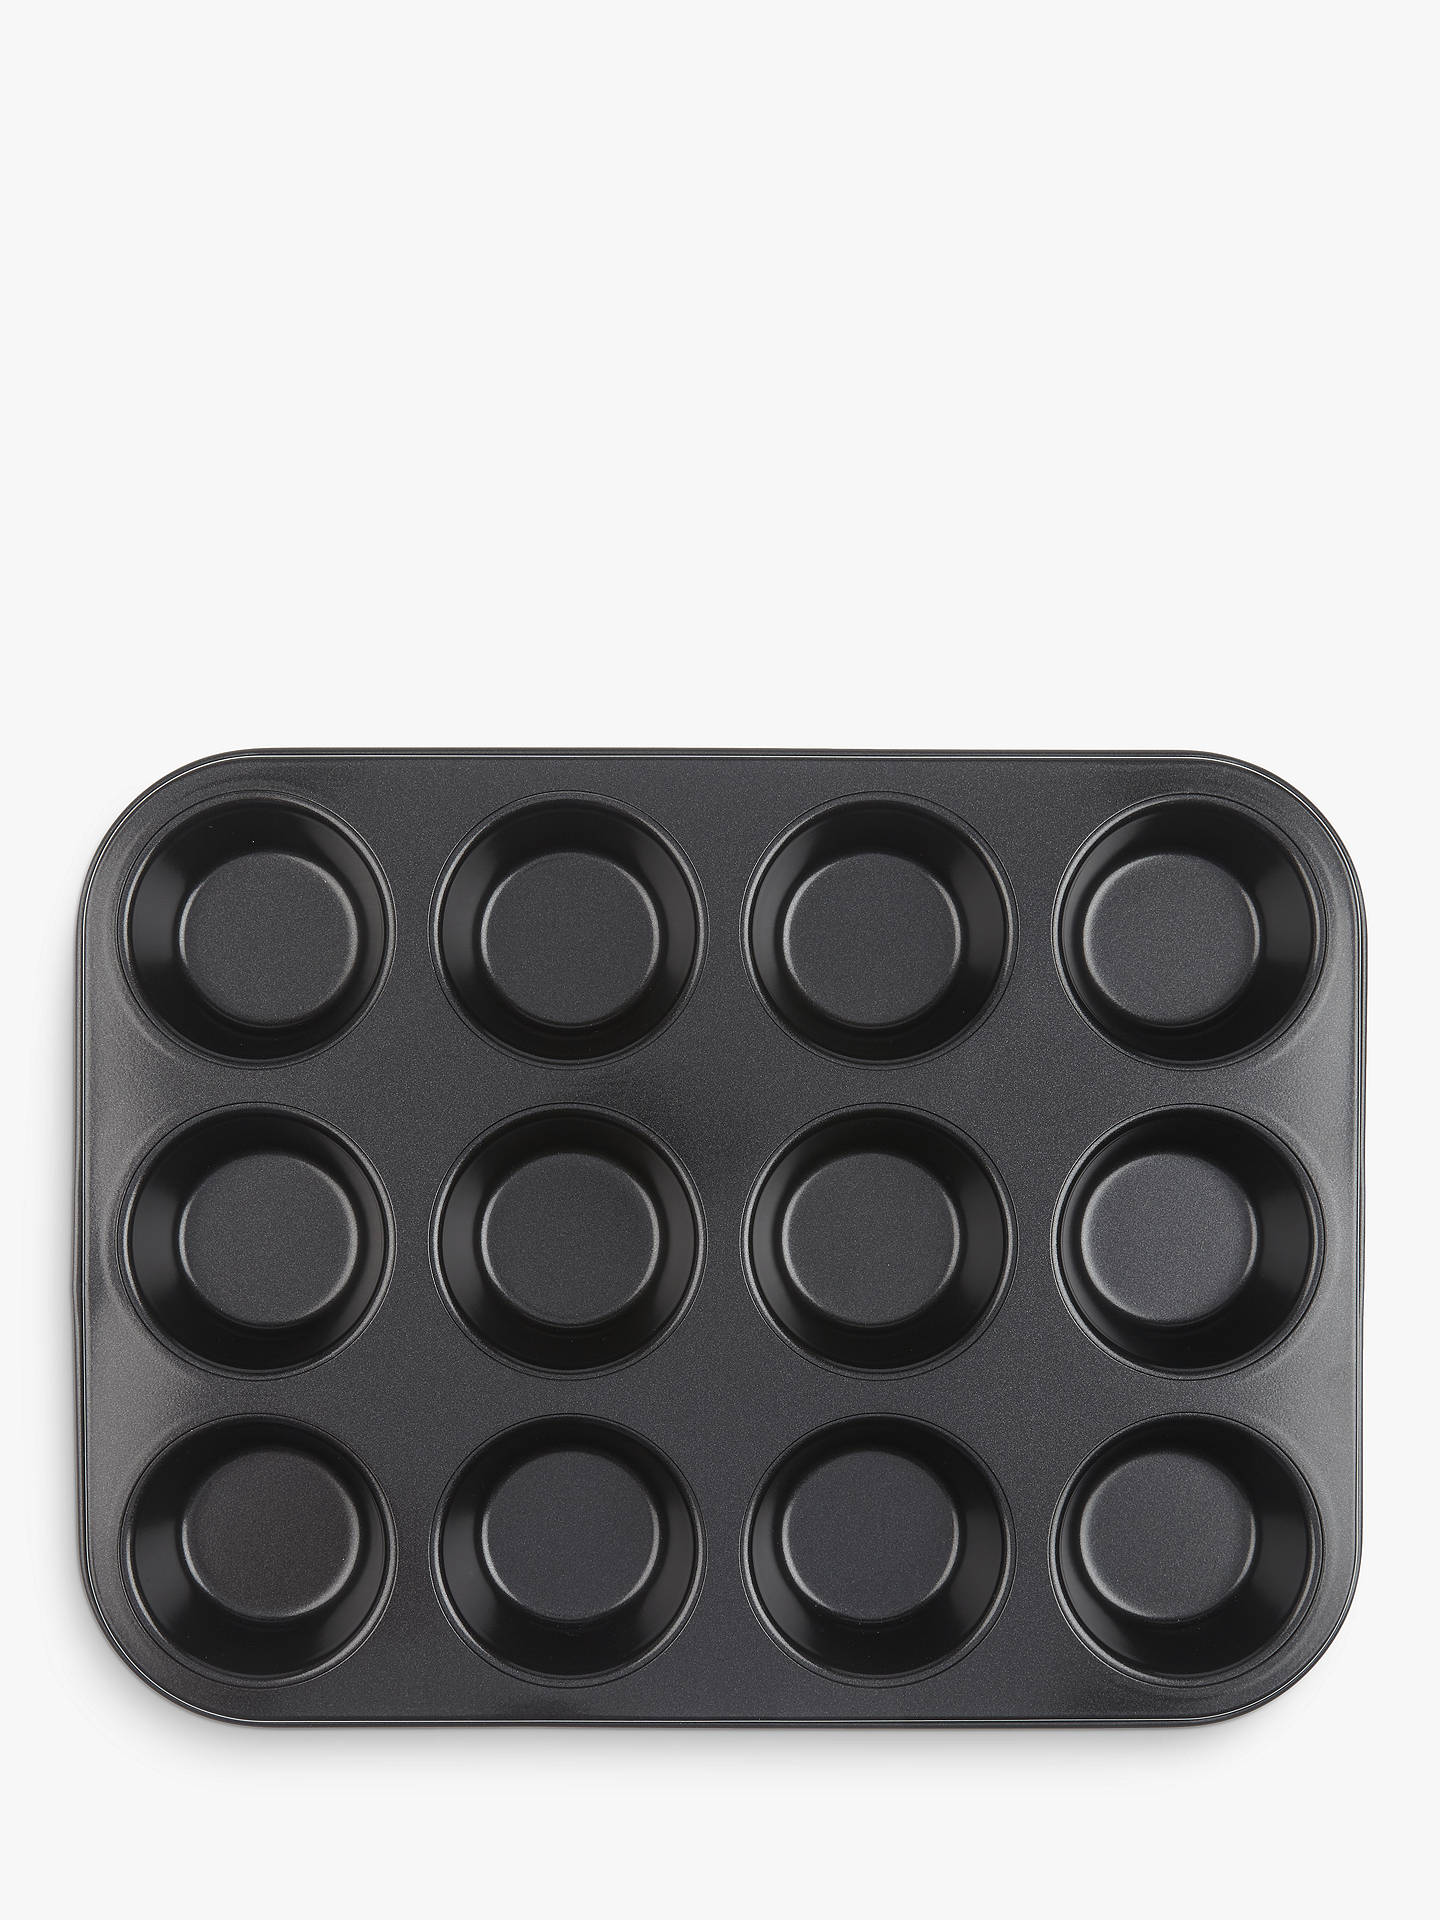 Buy John Lewis & Partners Professional Non-Stick 12 Cup Bun Tray Online at johnlewis.com